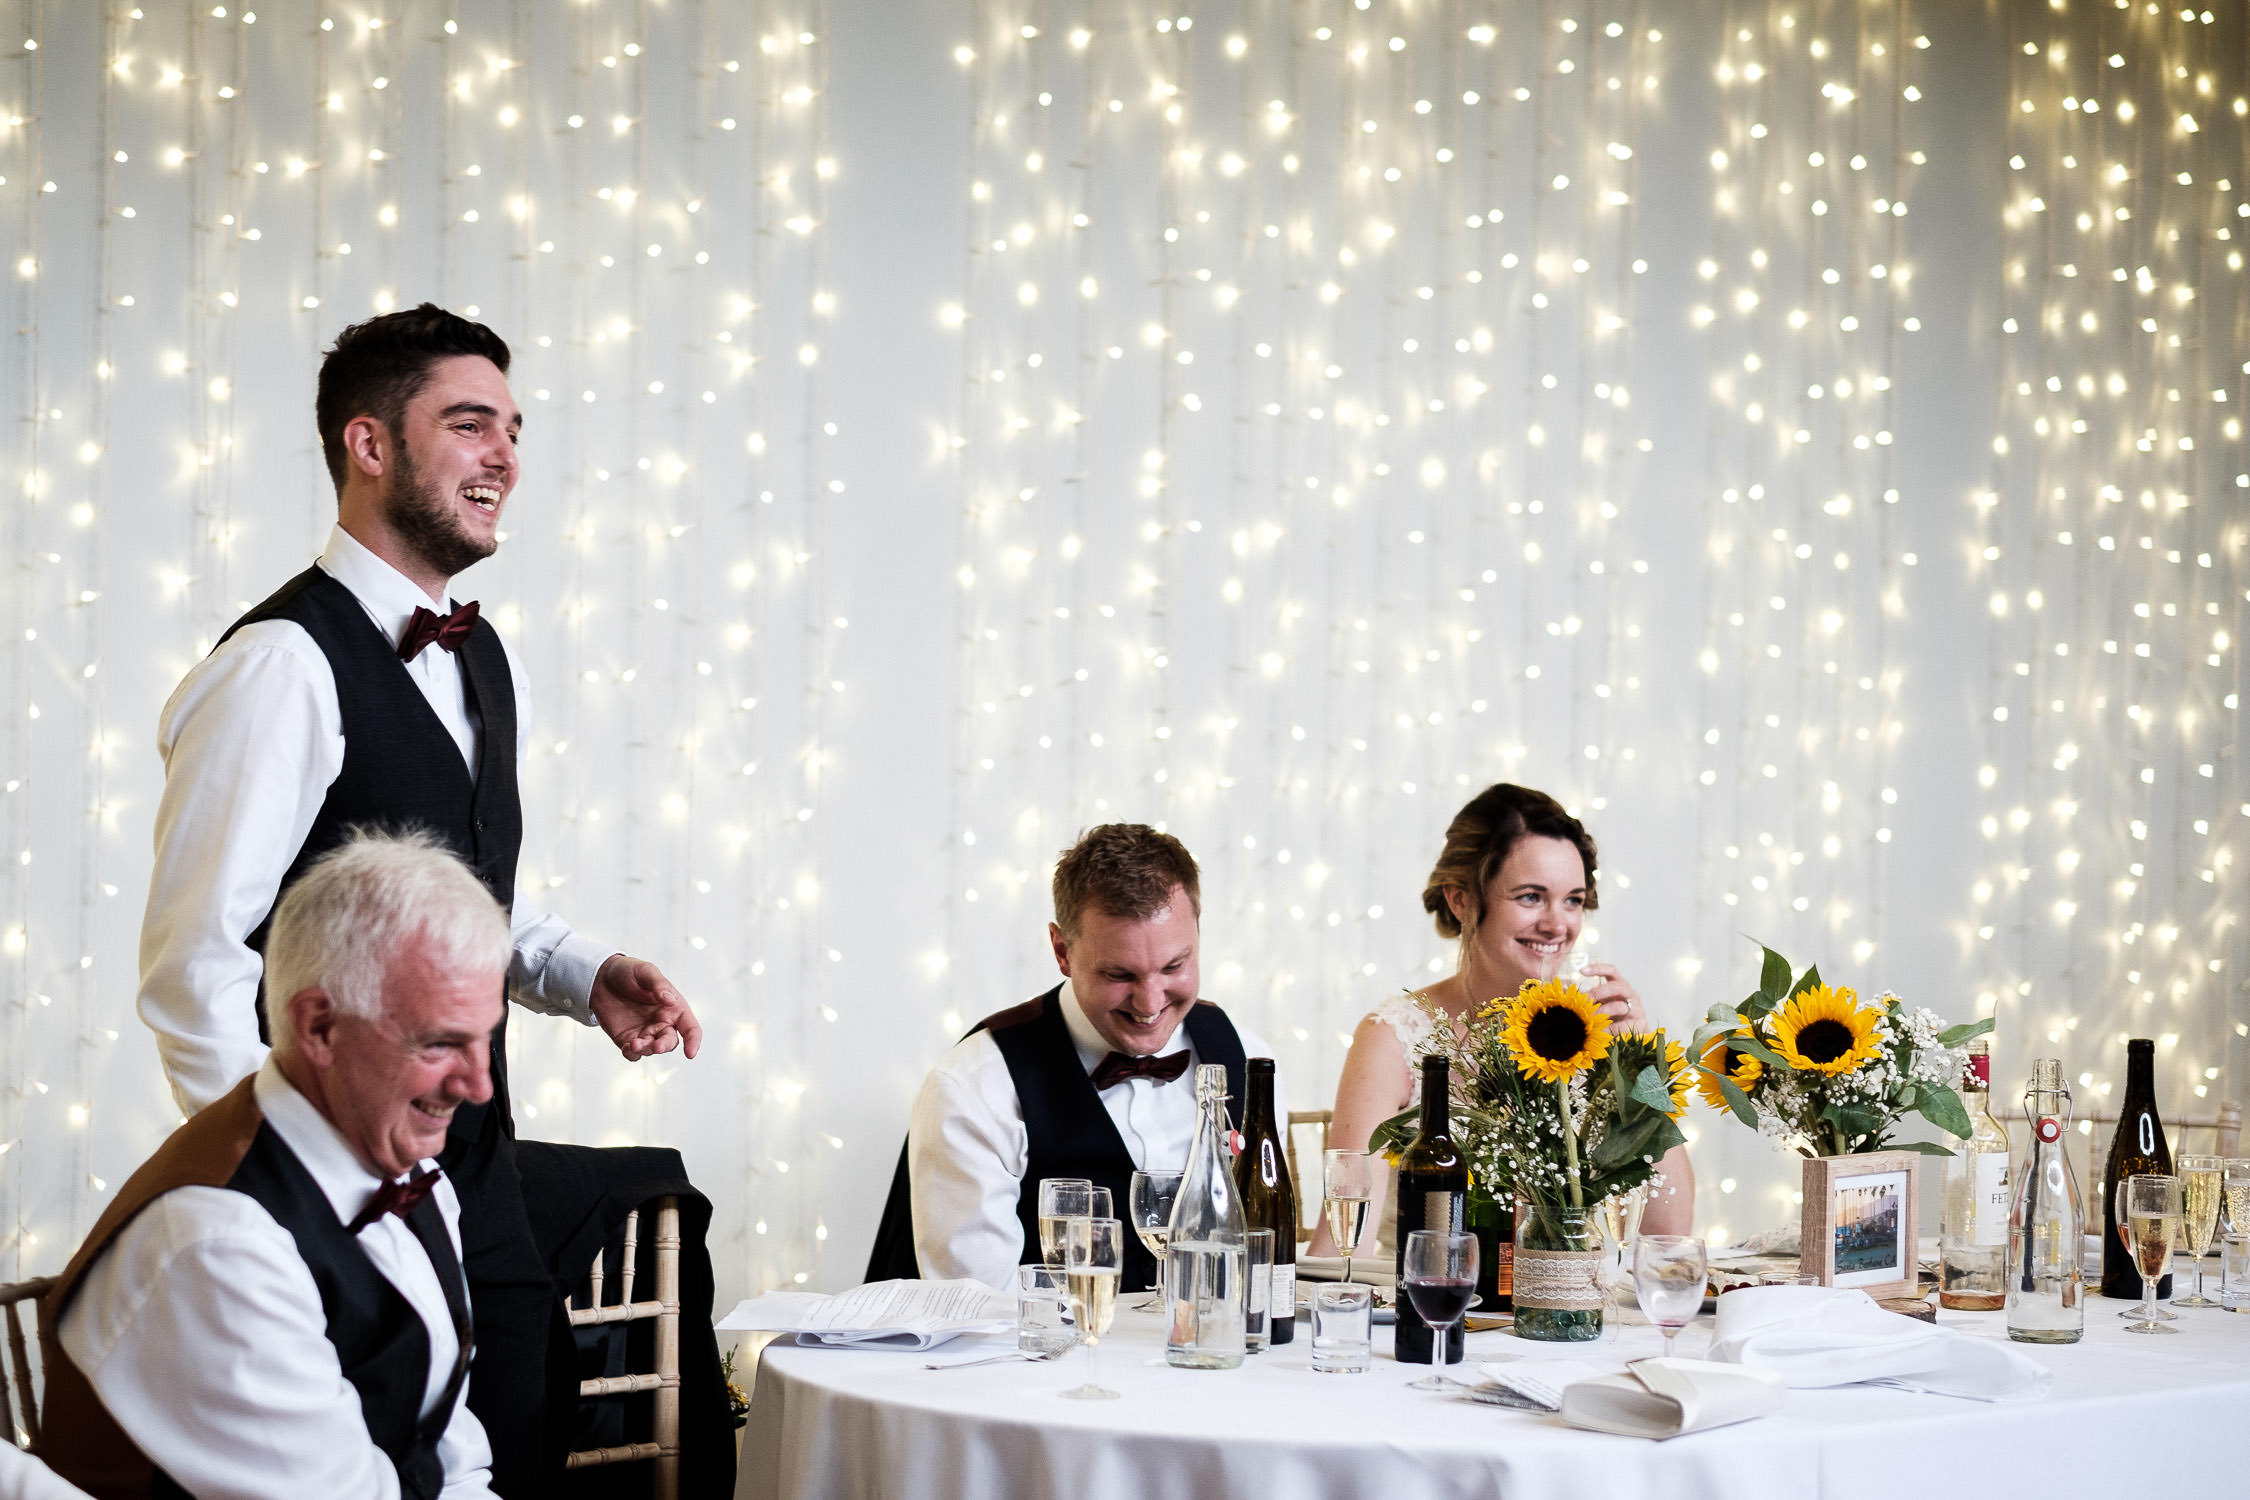 the best man makes the groom laugh with speech